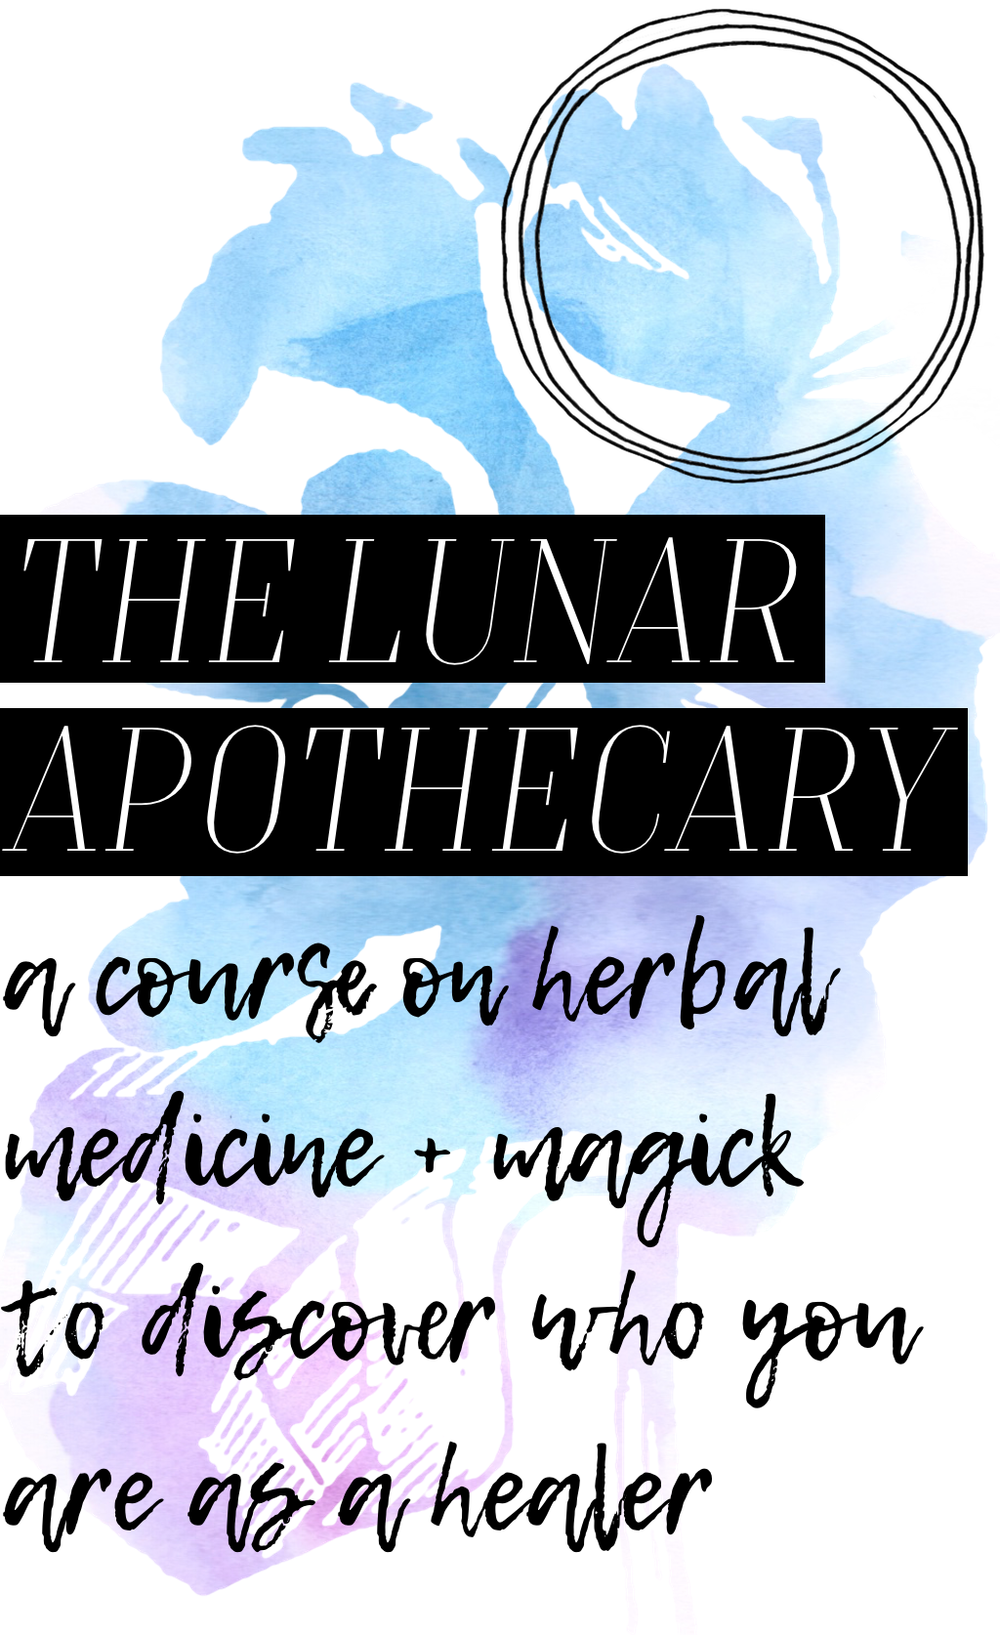 lunar apothecary astroherbology astroherbalism new moon